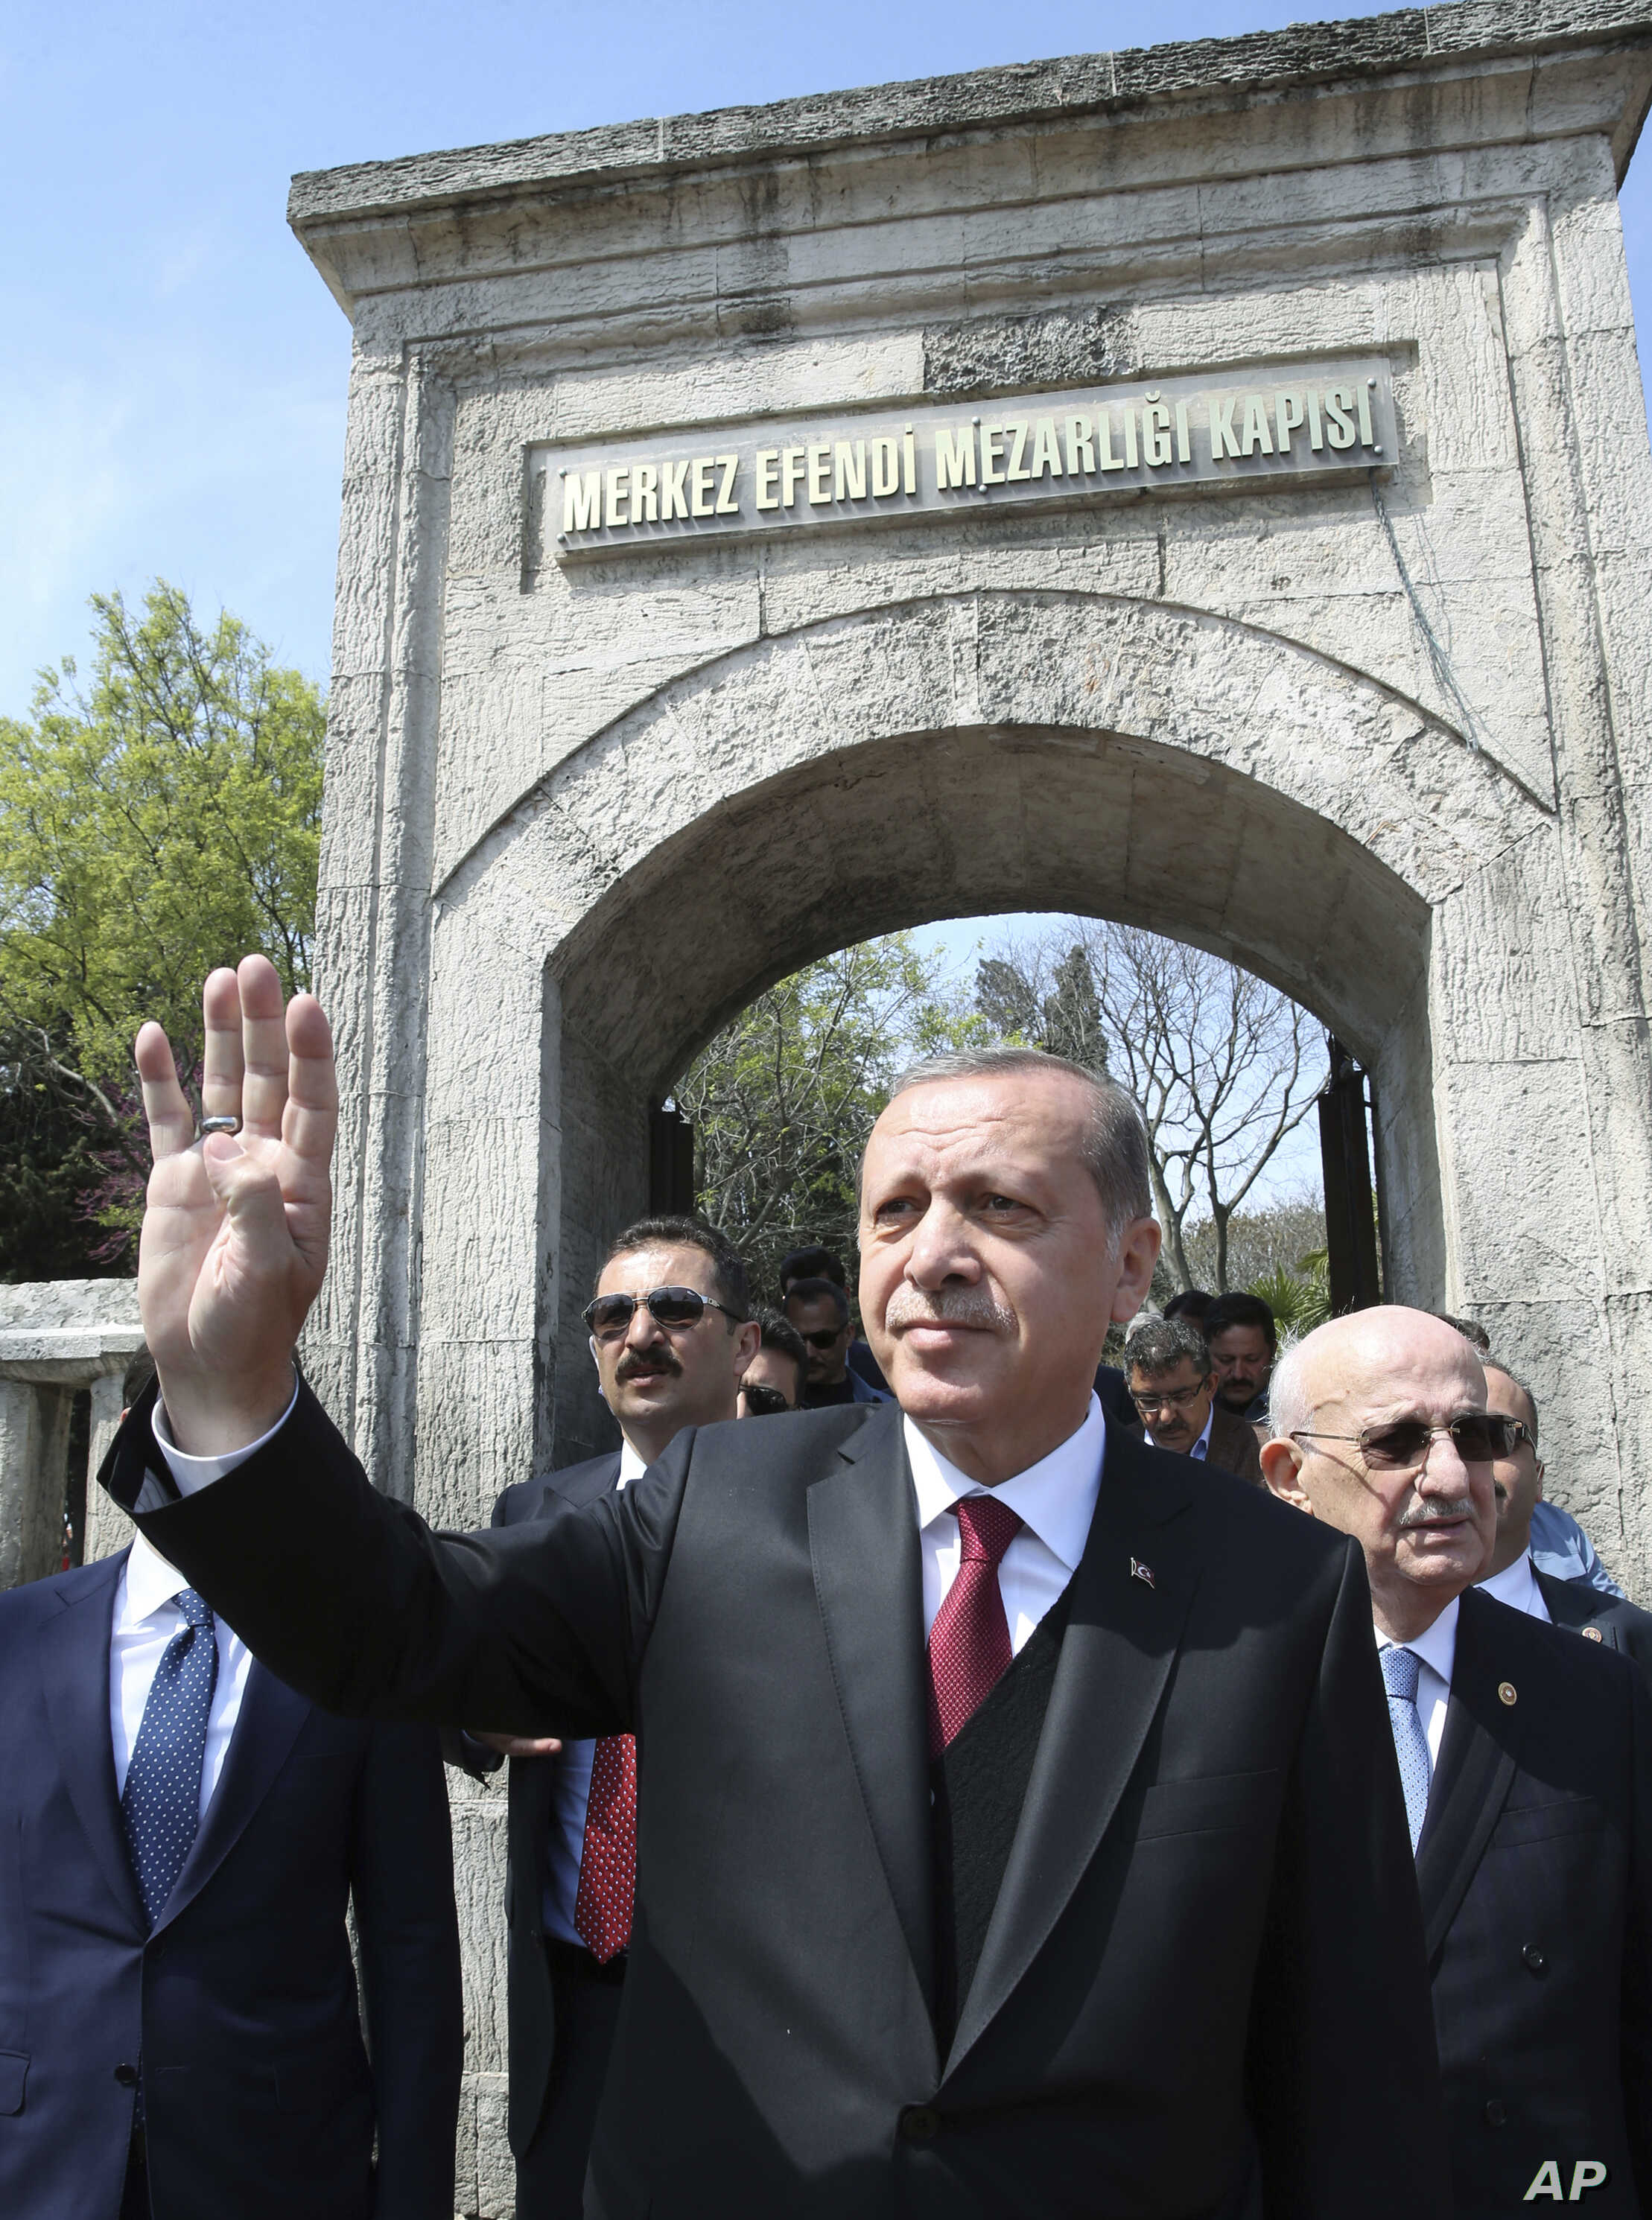 Turkey's President Recep Tayyip Erdogan waves after he visited the graves of three conservative late Turkish prime ministers, in Istanbul, April 17, 2017.